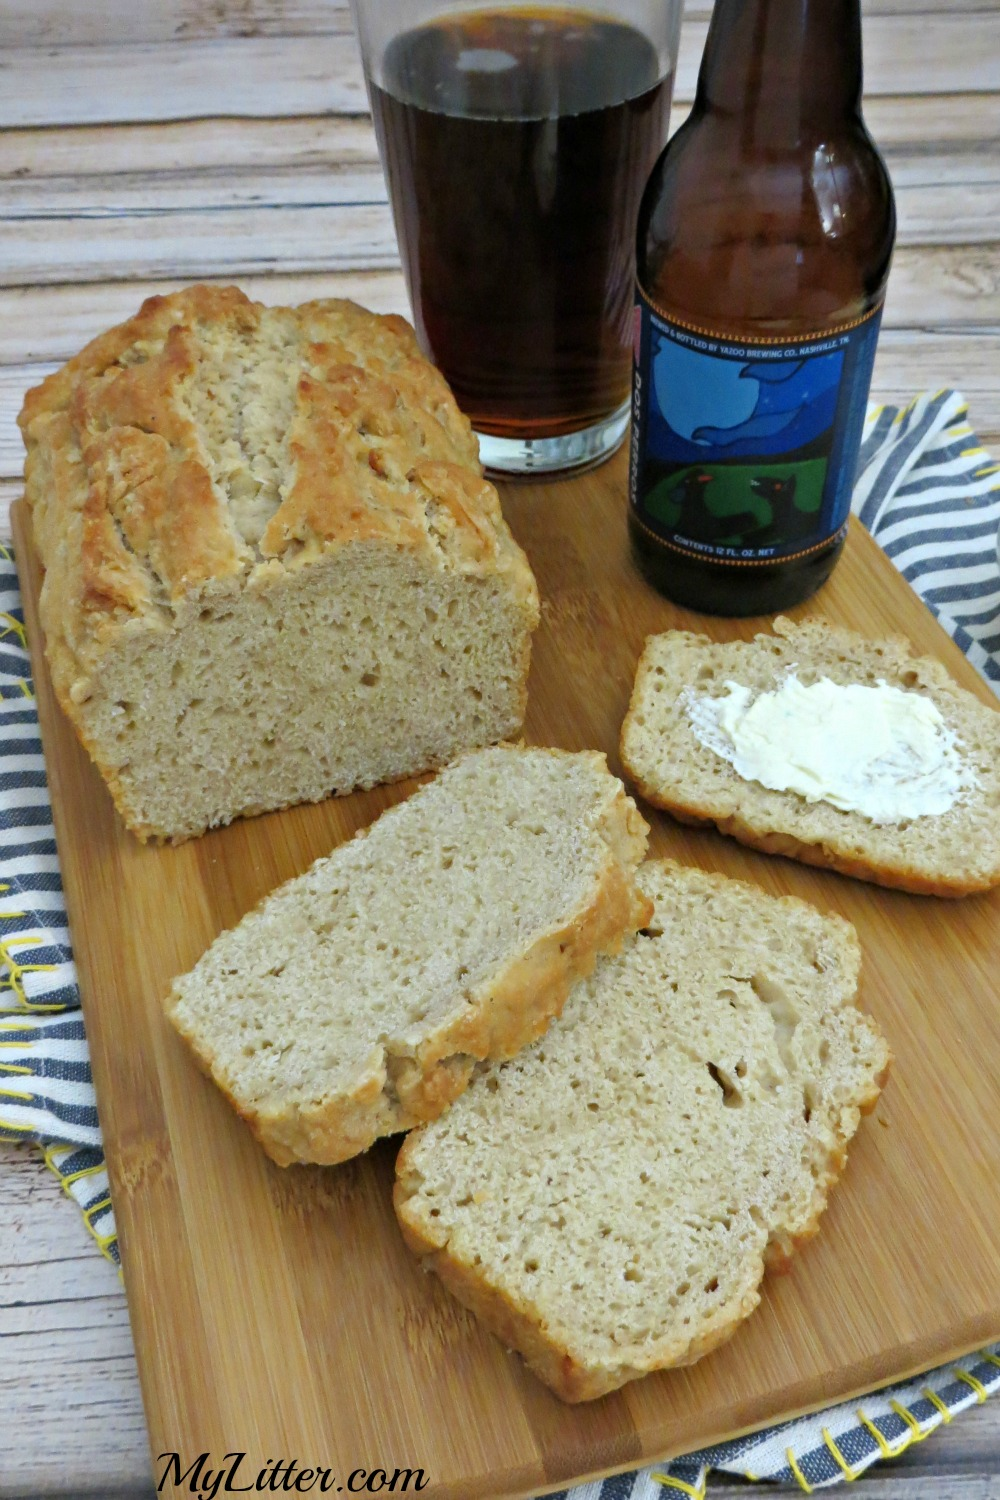 This 3 Ingredient Beer Bread Recipe is so easy & delicious! It goes great with a hearty stew and salad for a full meal. A quick bread recipe that everyone will keep asking for!